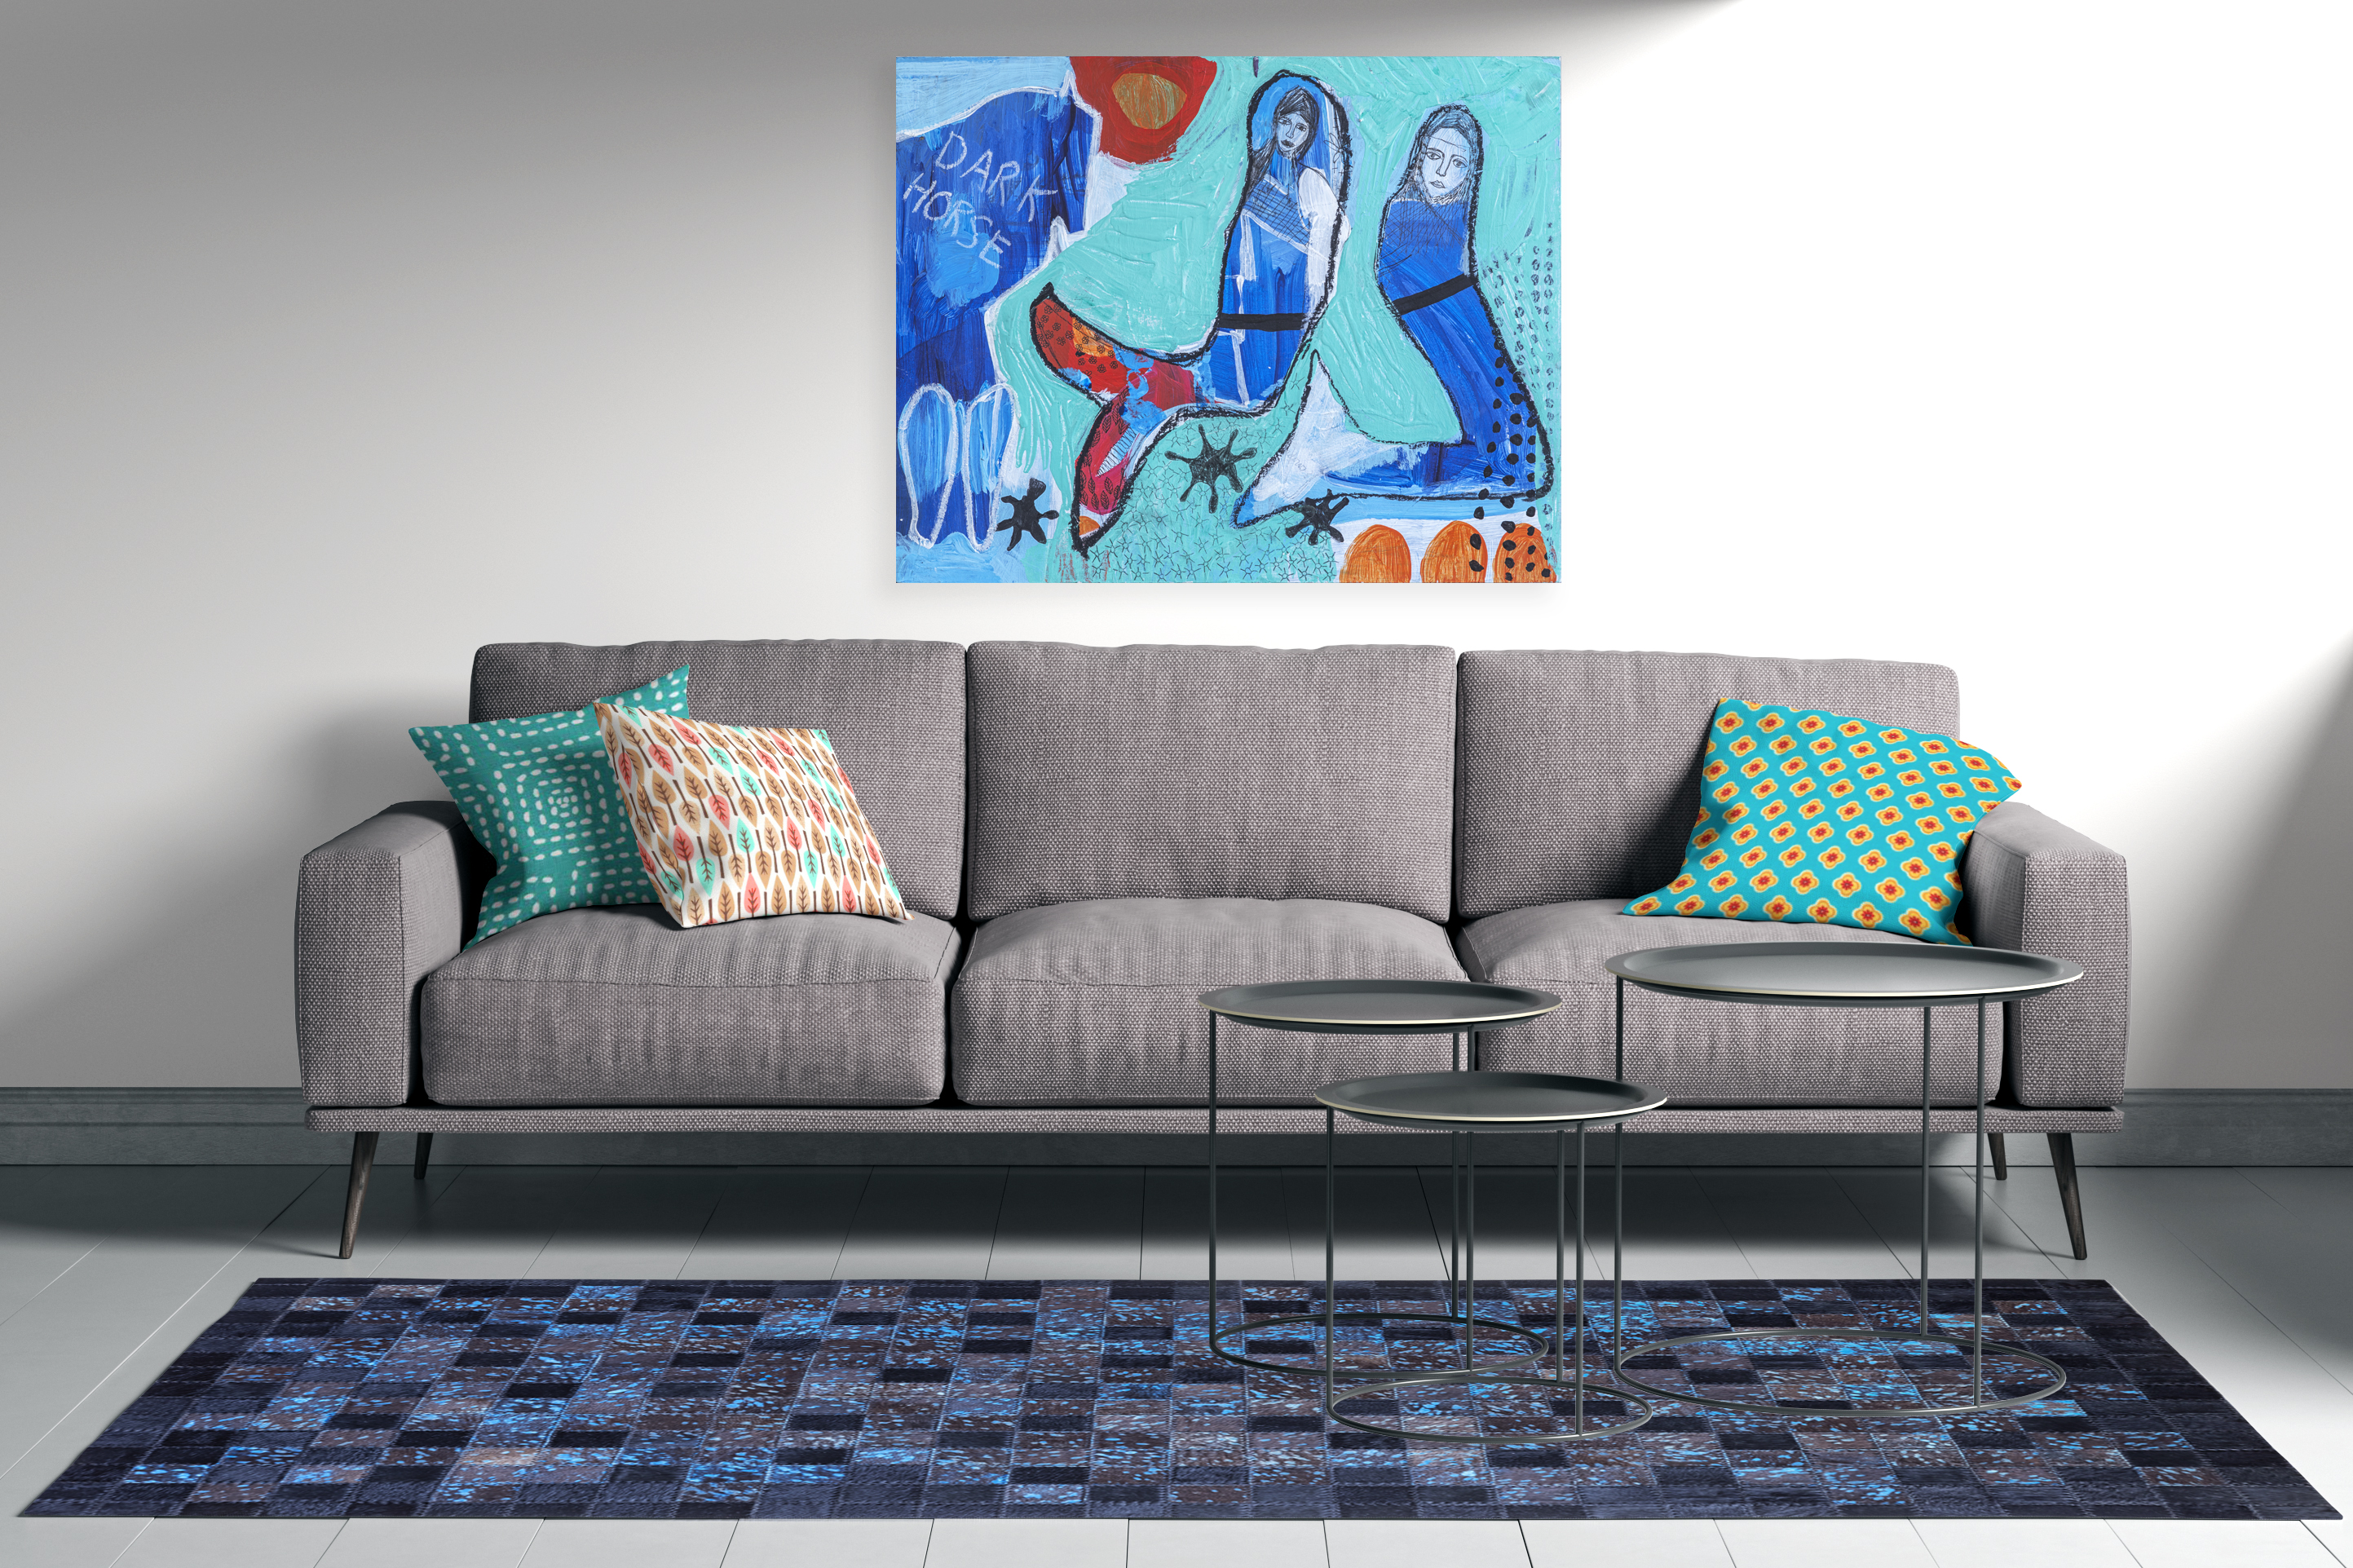 Blue designer hide in front of a grey couch